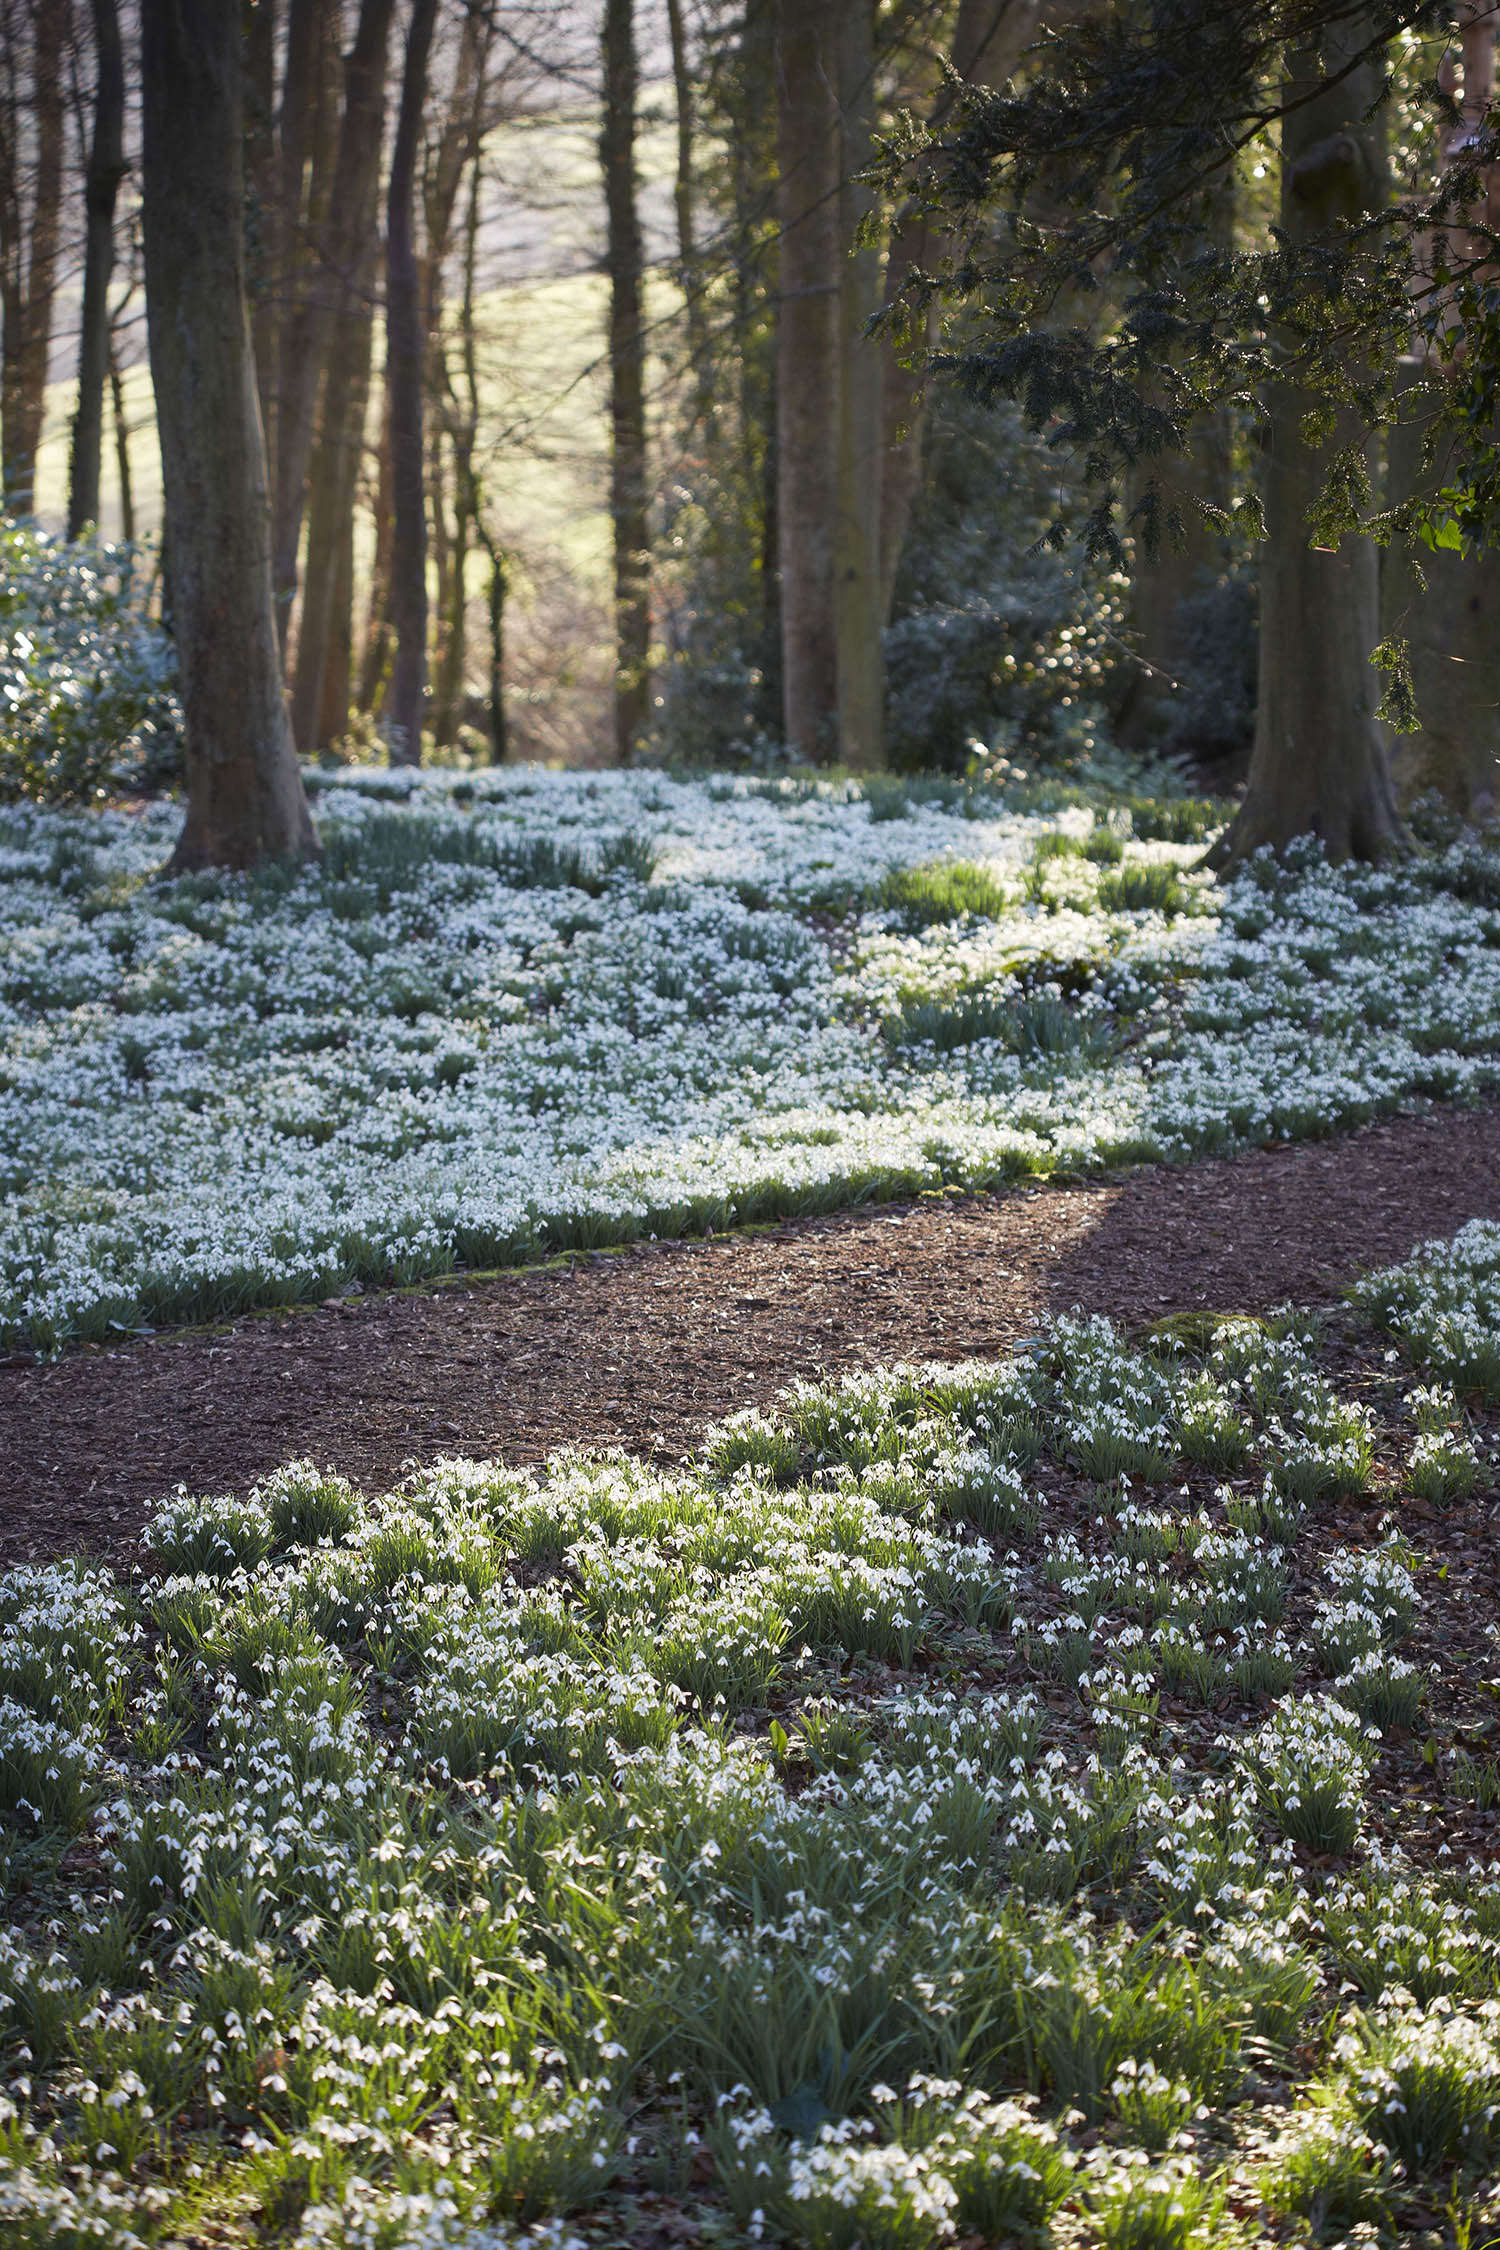 Snowdrops at Painswick Rococo Garden, Gloucestershire